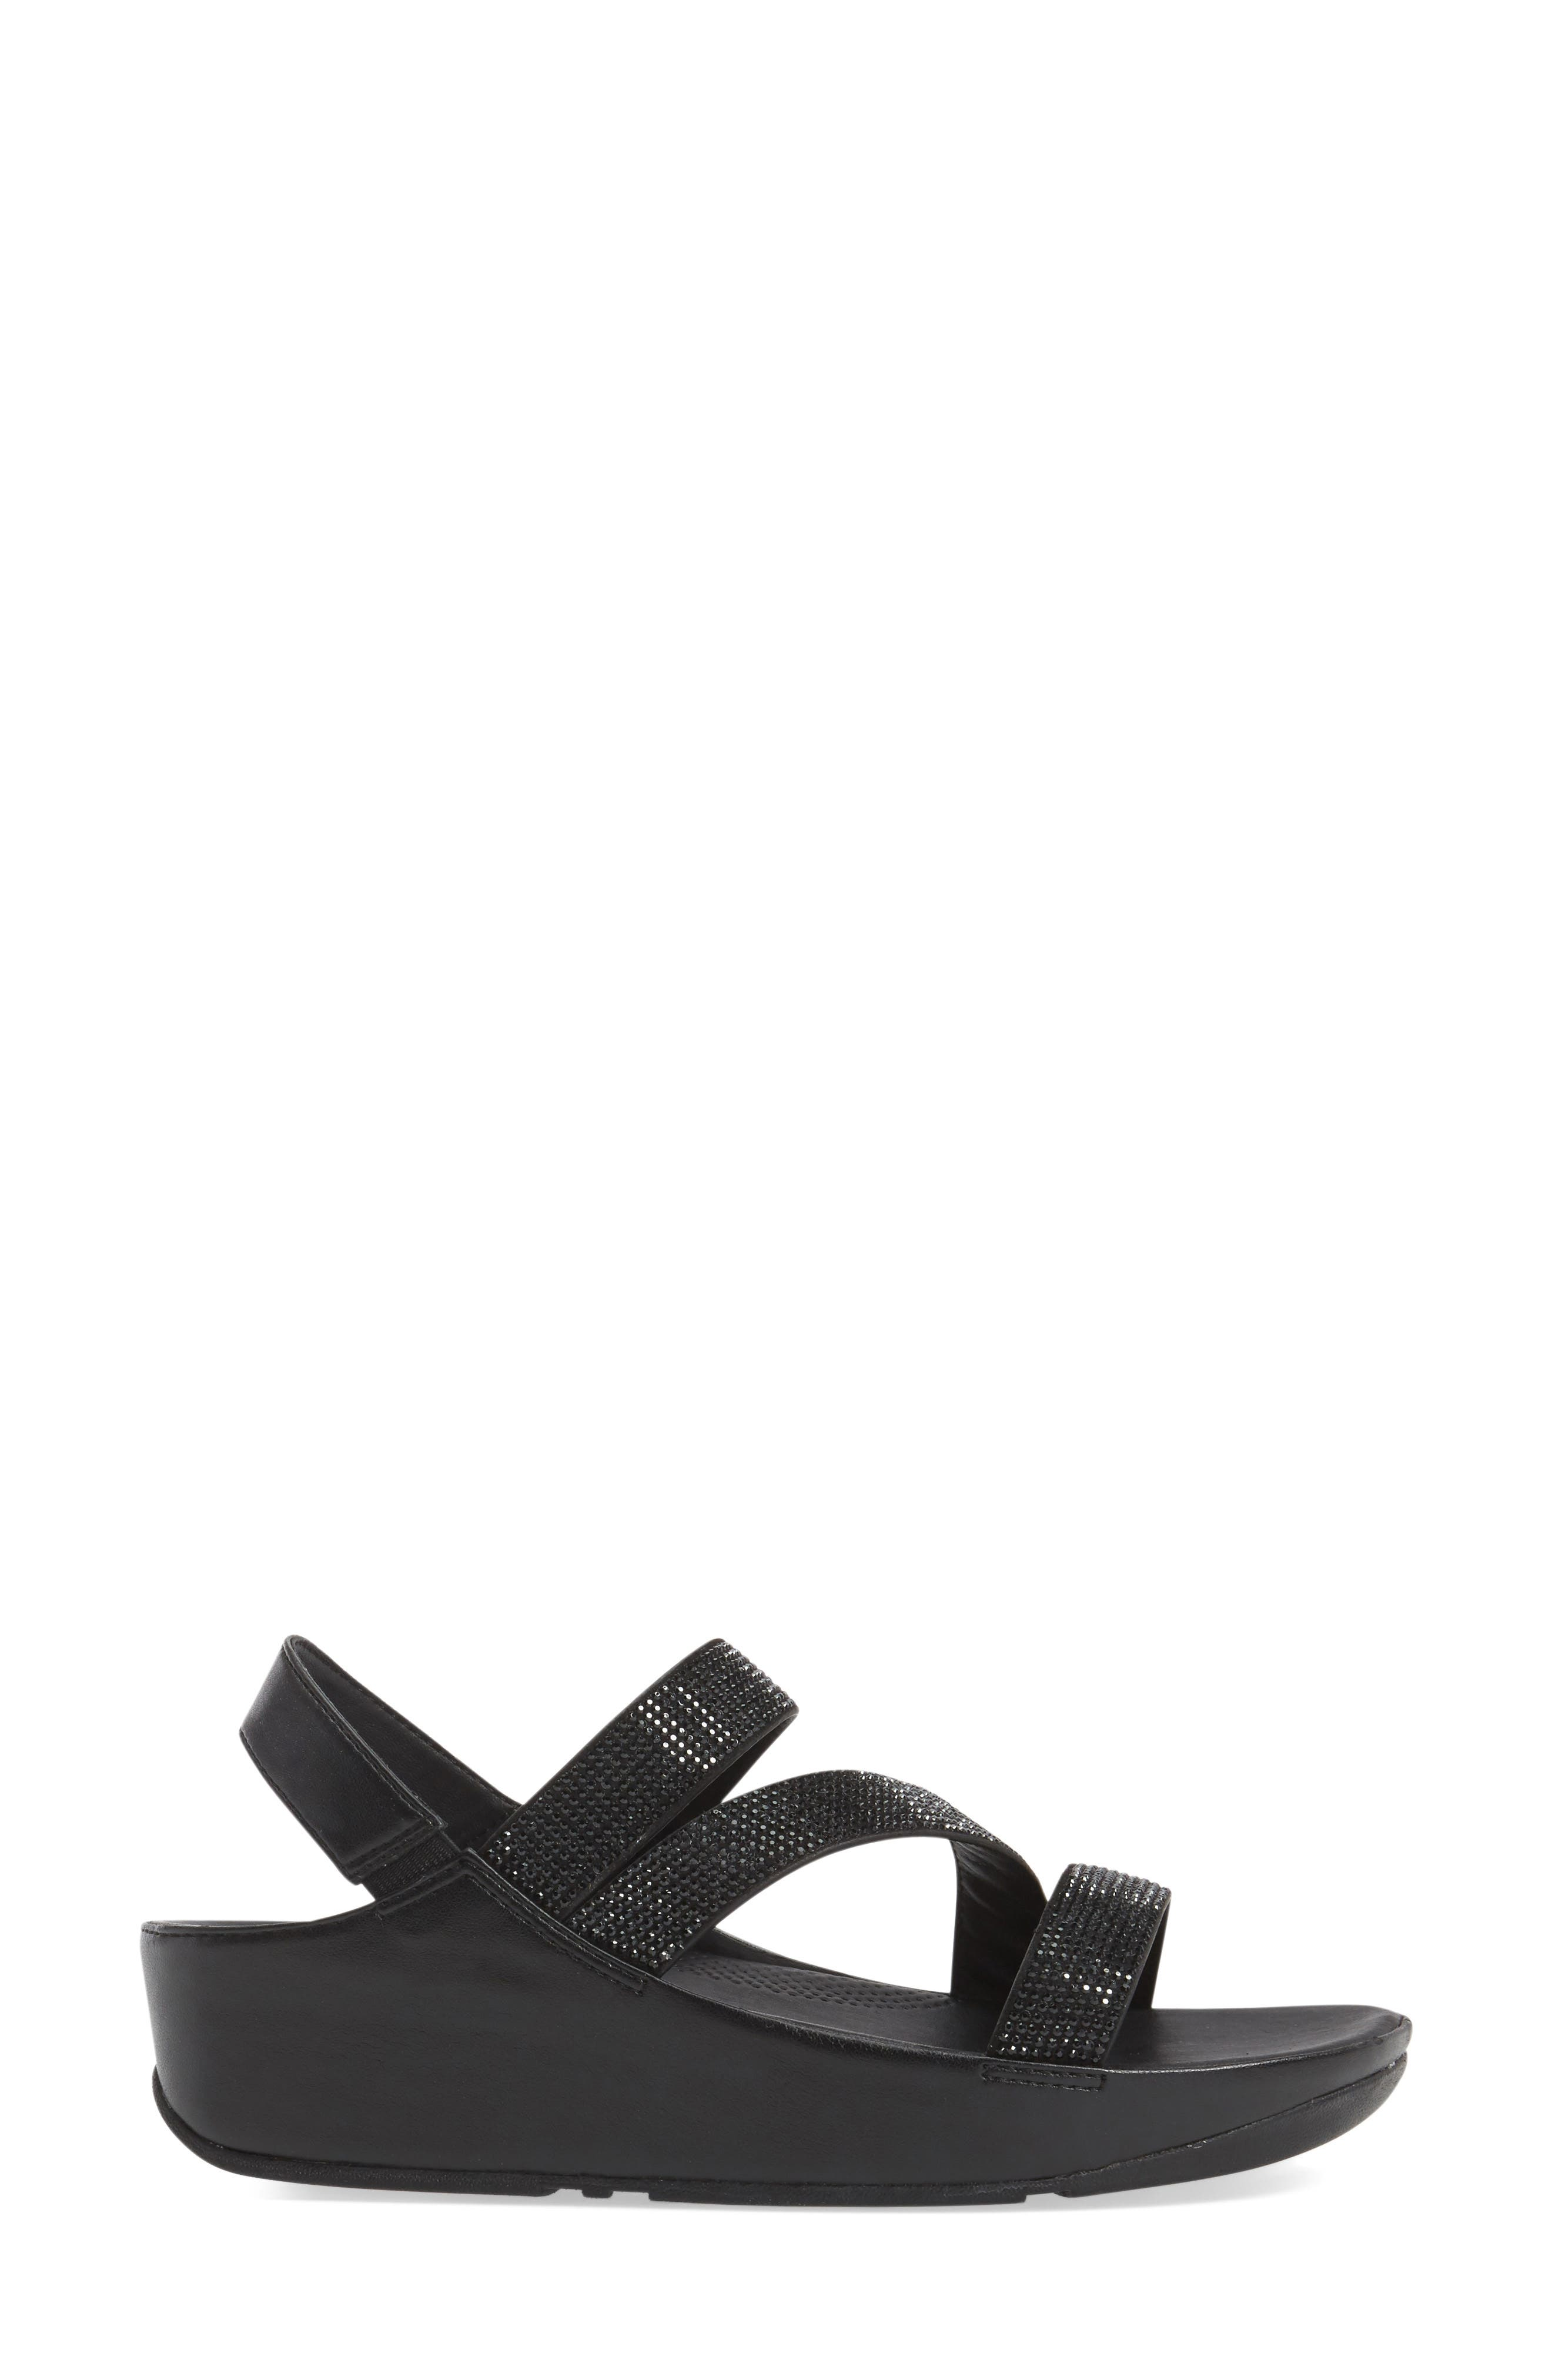 FITFLOP,                              Crystall Wedge Sandal,                             Alternate thumbnail 3, color,                             001